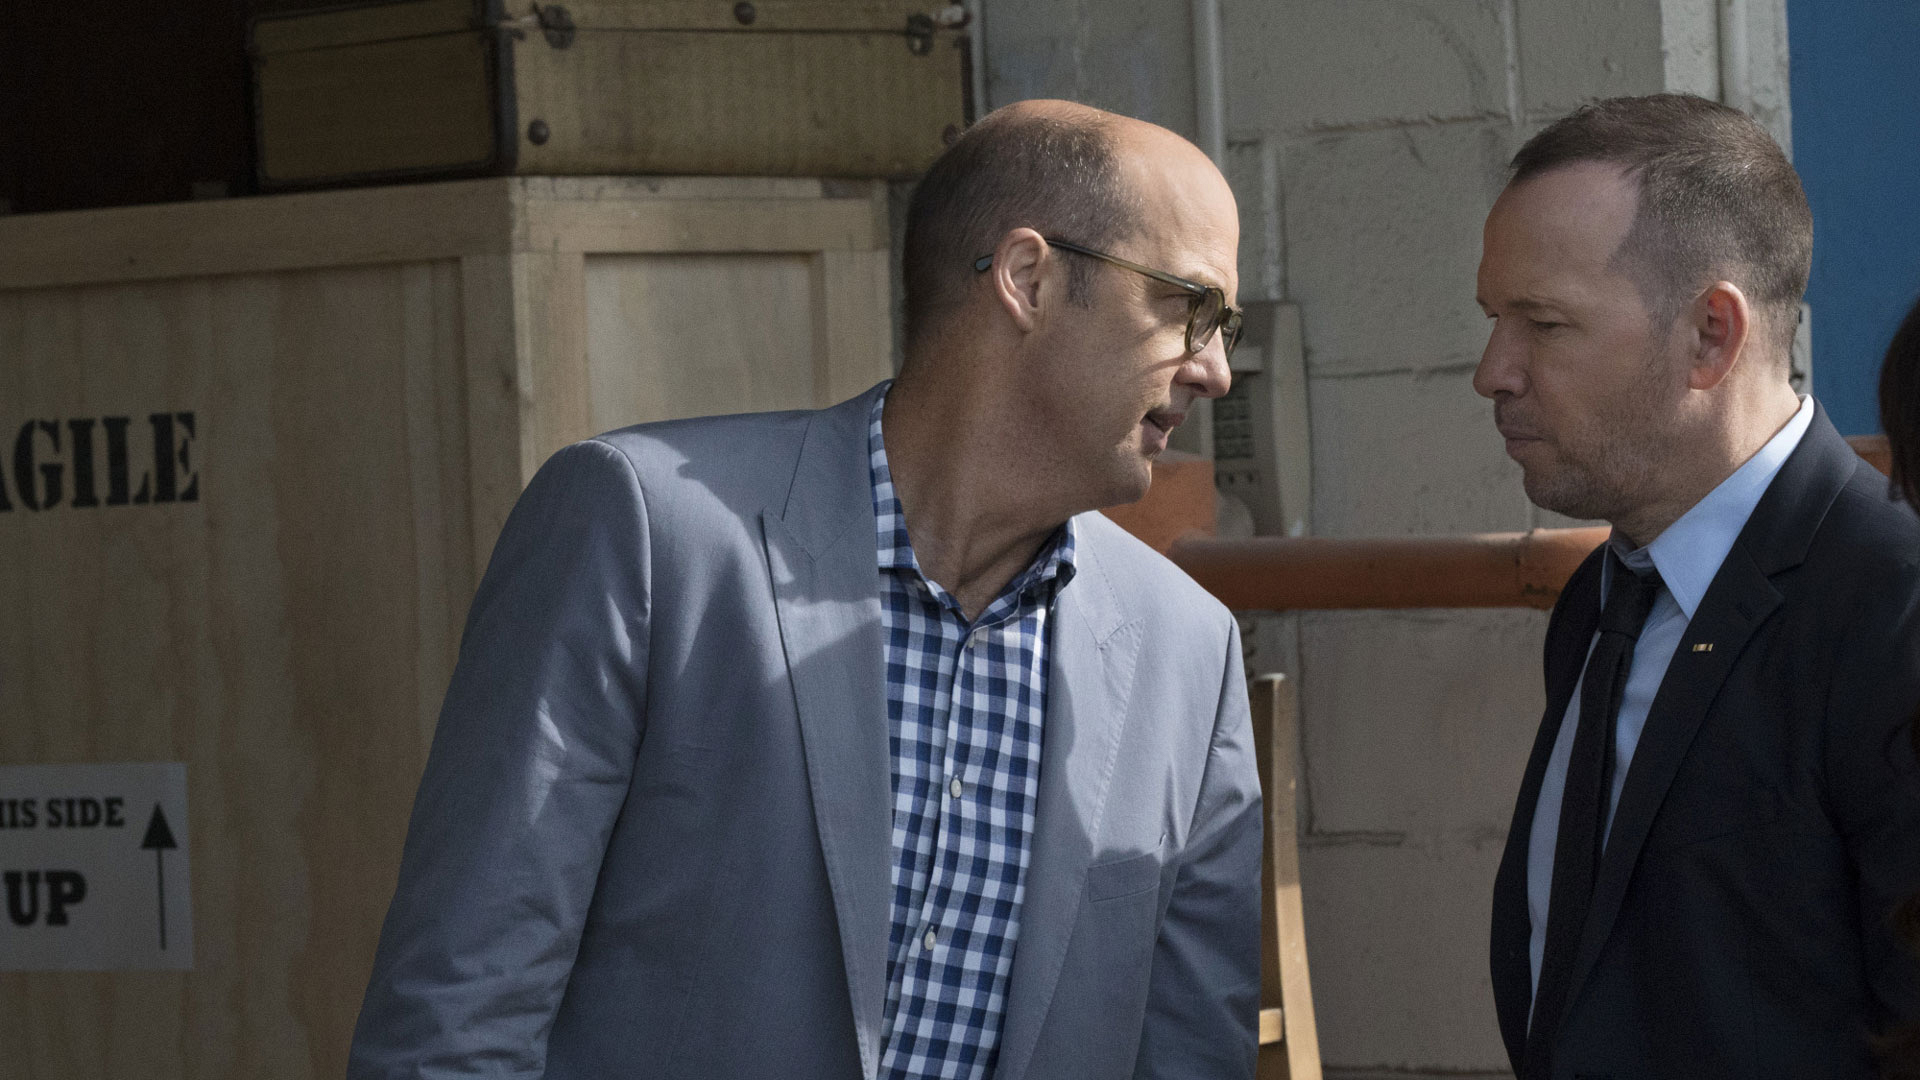 Anthony Edwards as Owen Cairo and Donnie Wahlberg as Danny Reagan